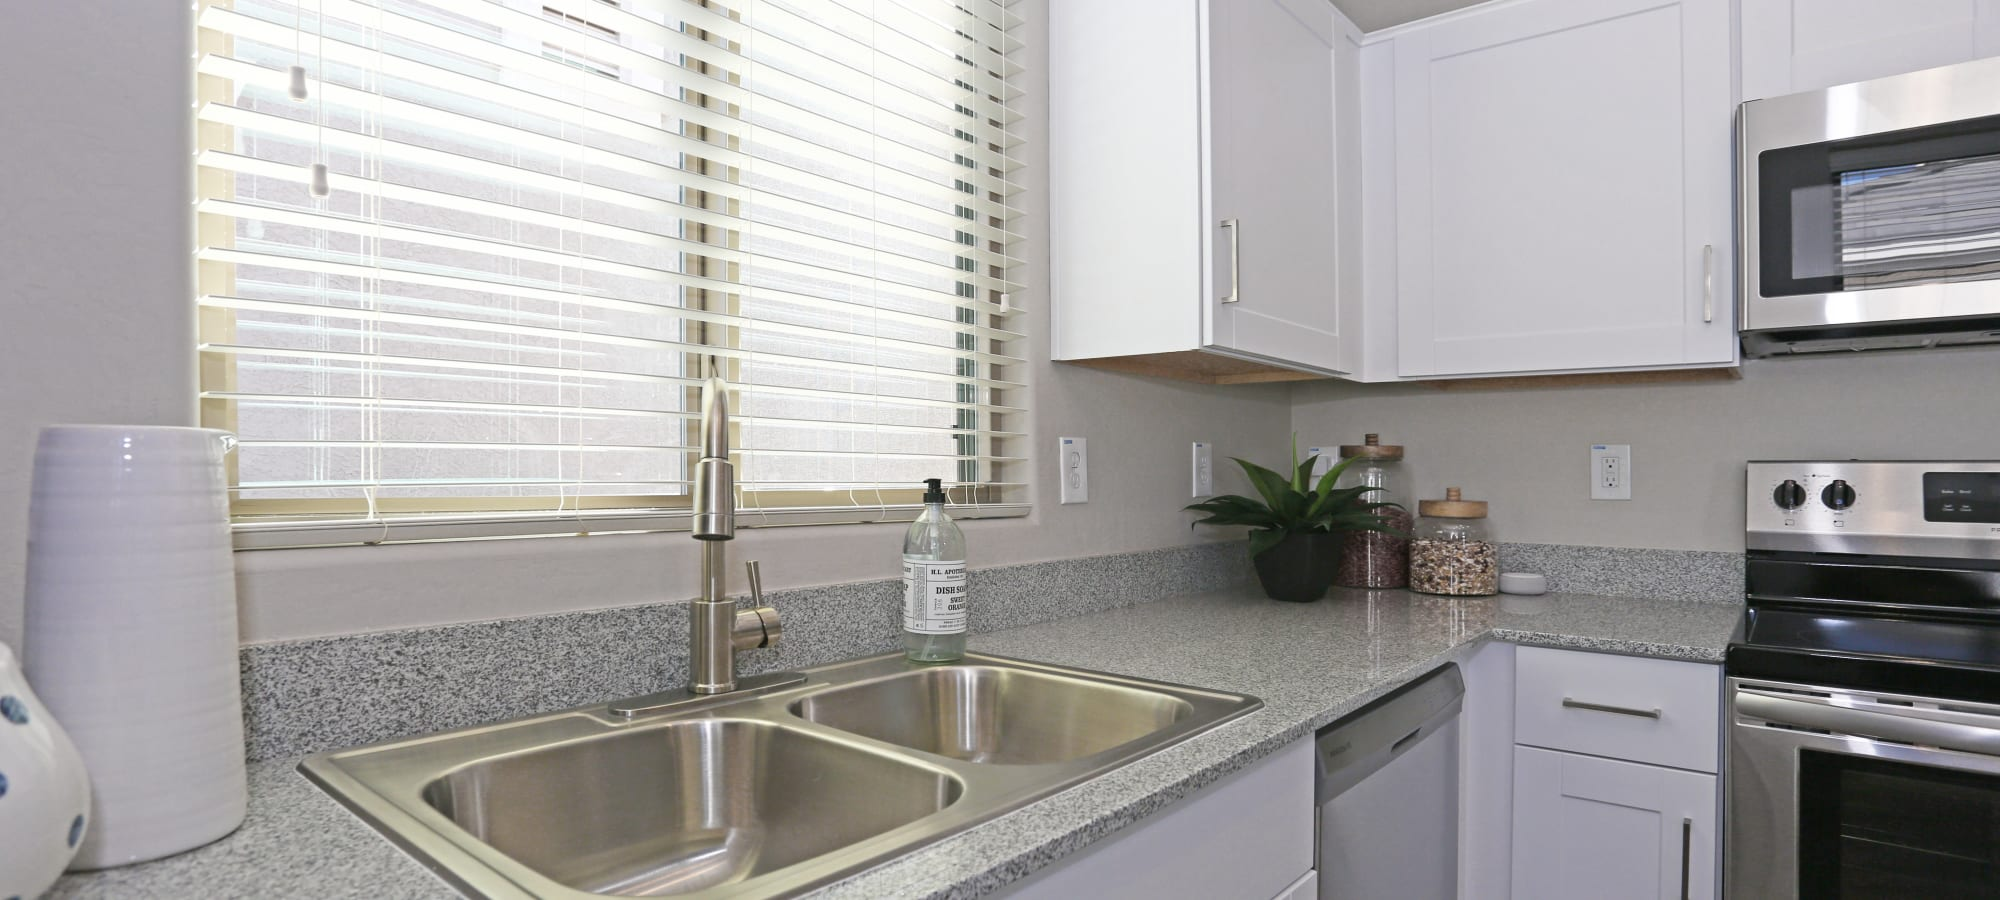 Dual stainless-steel sink in kitchen of model home at Christopher Todd Communities On Mountain View in Surprise, Arizona